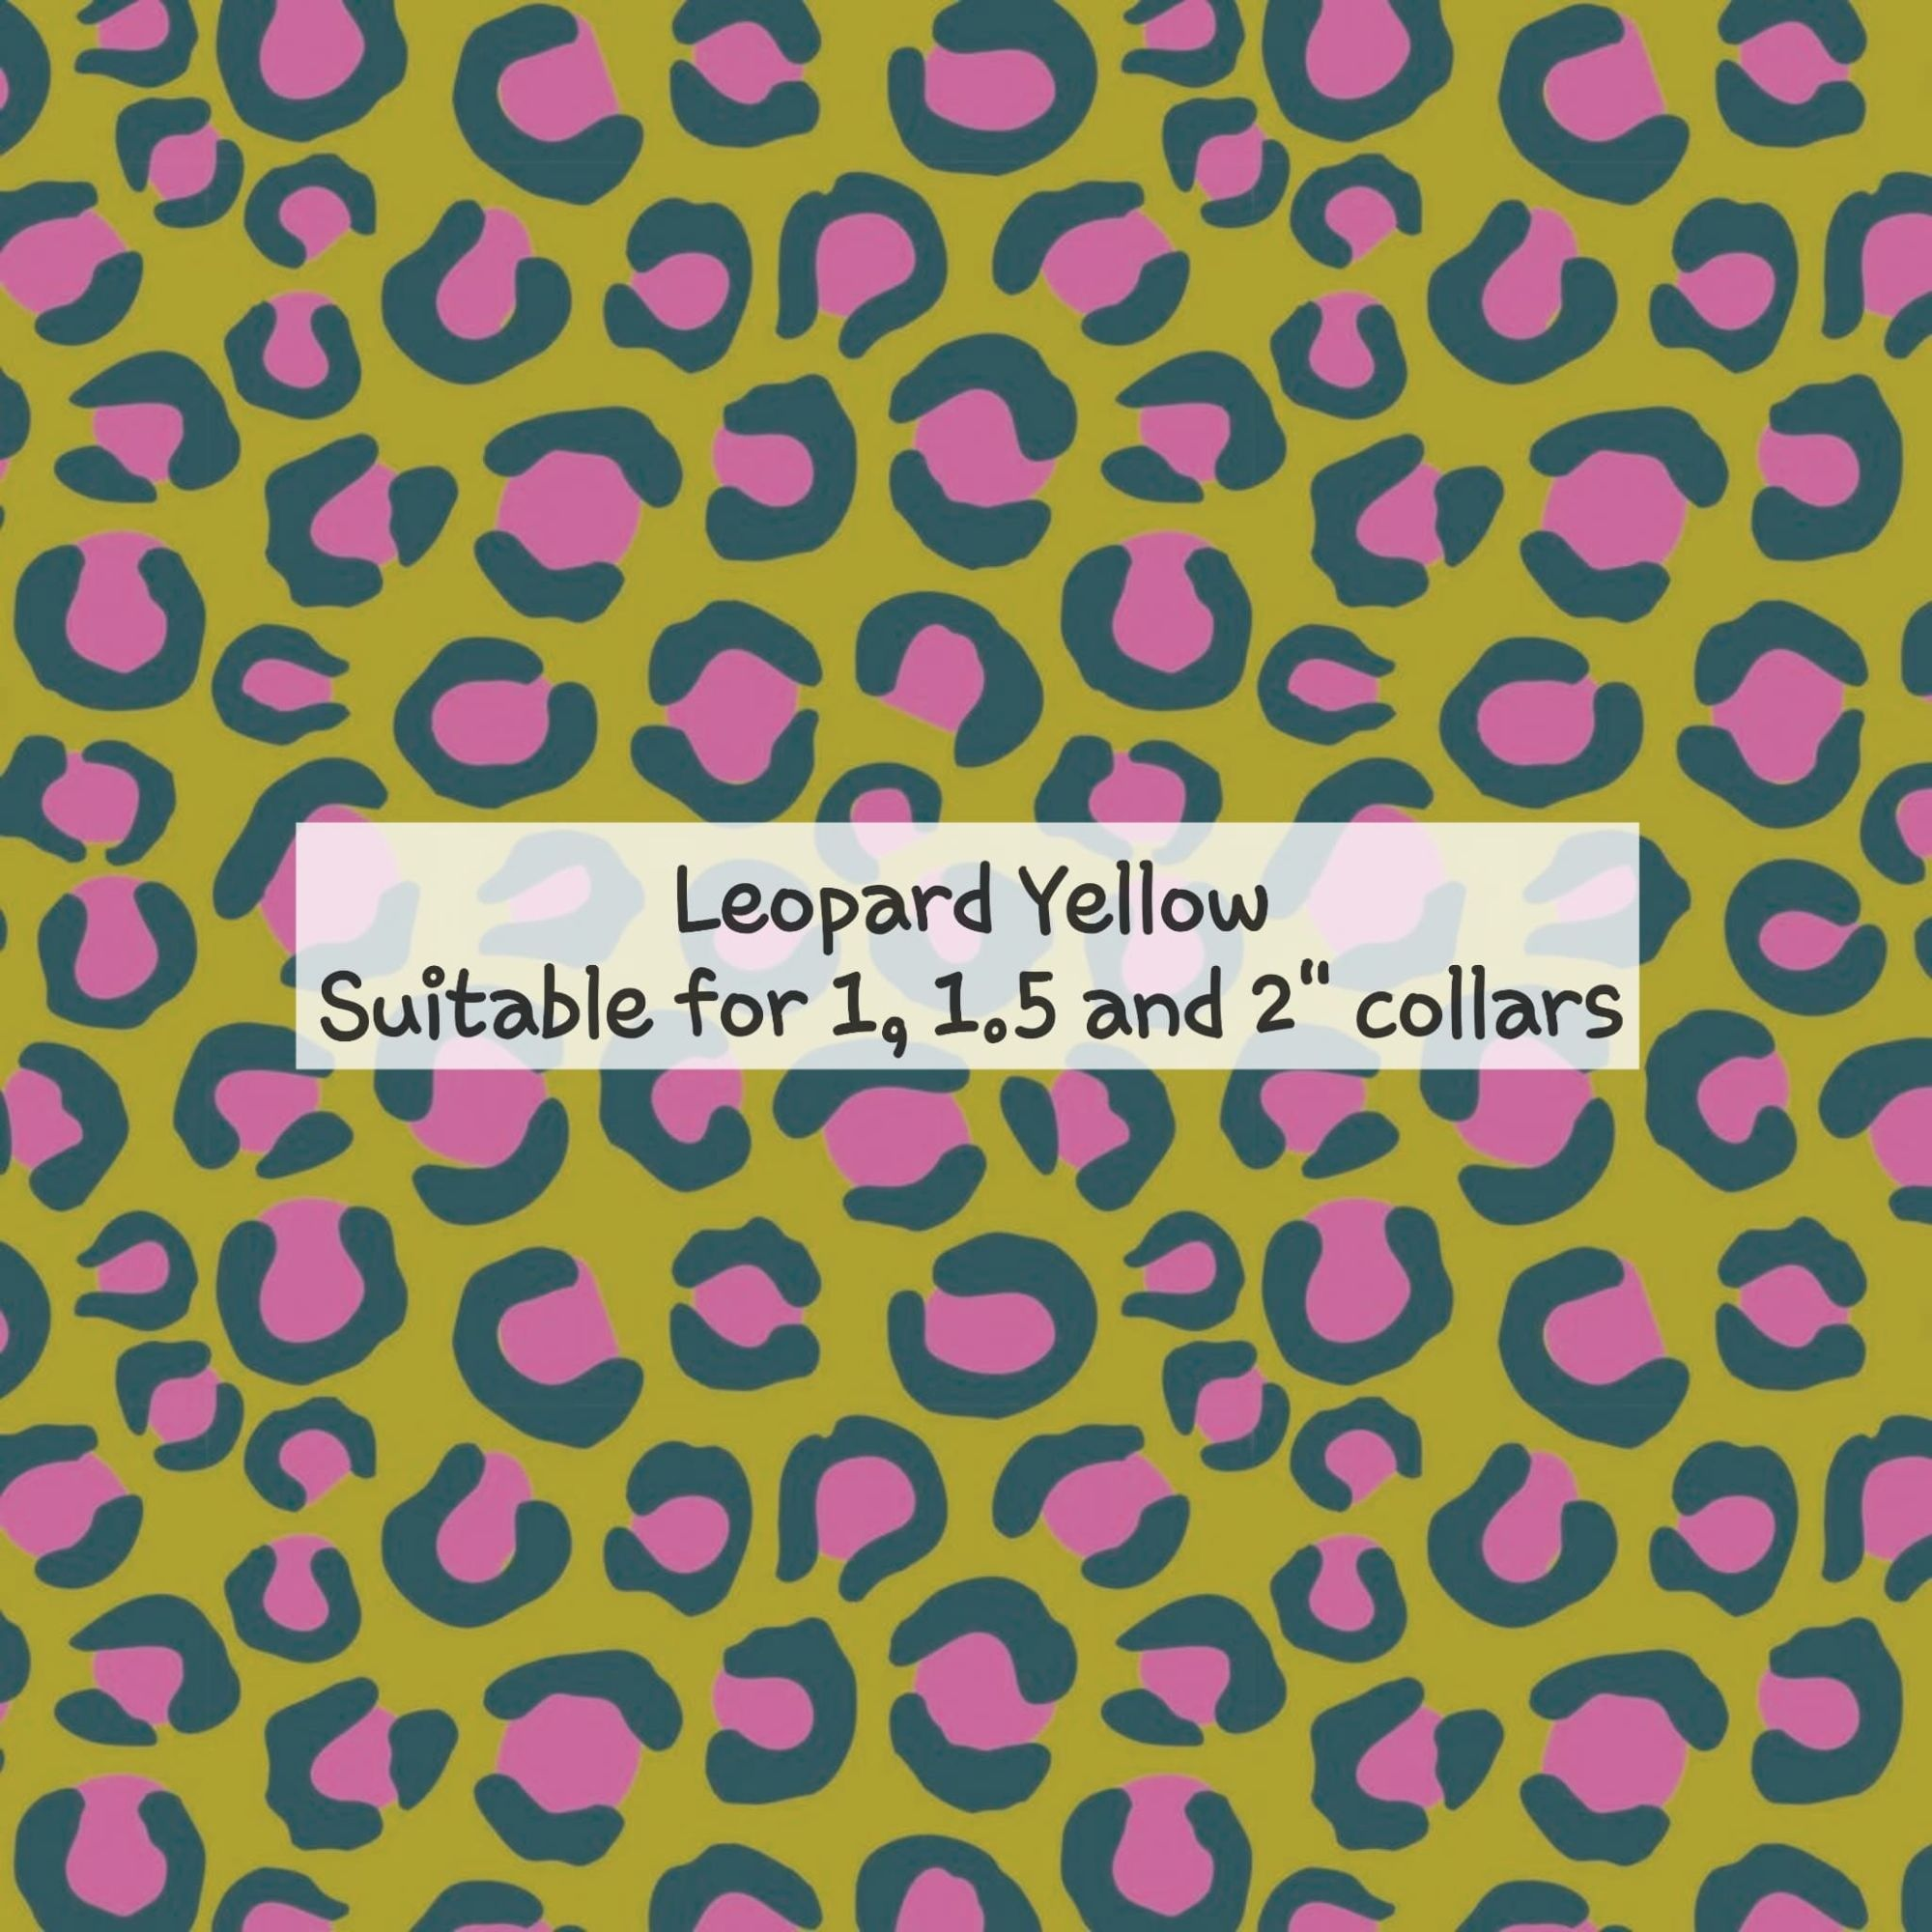 Leopard Yellow - Suitable for 1, 1.5 and 2 inch collars